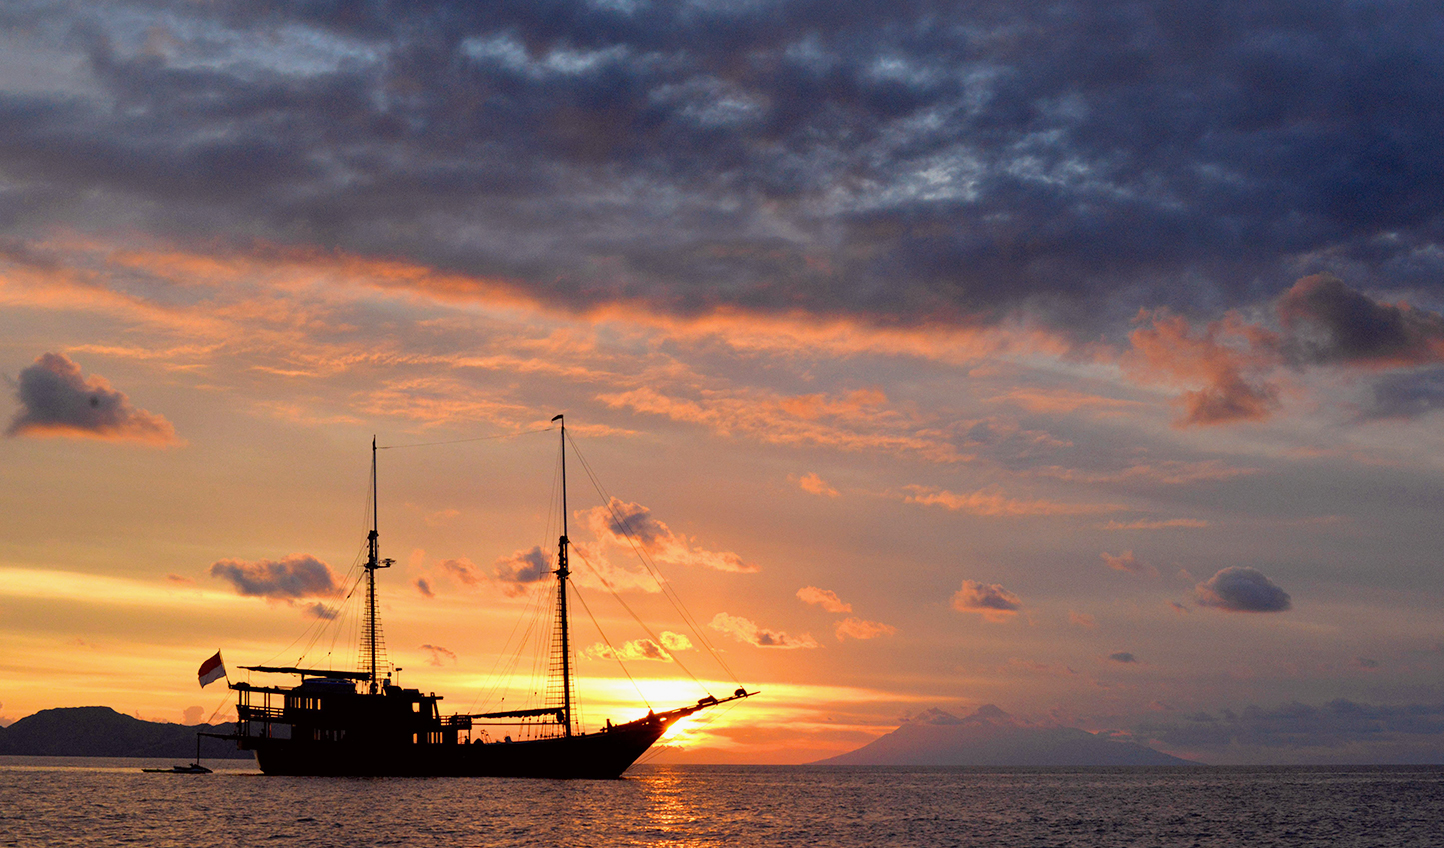 One last sunset before sailing back to Sorong's harbour